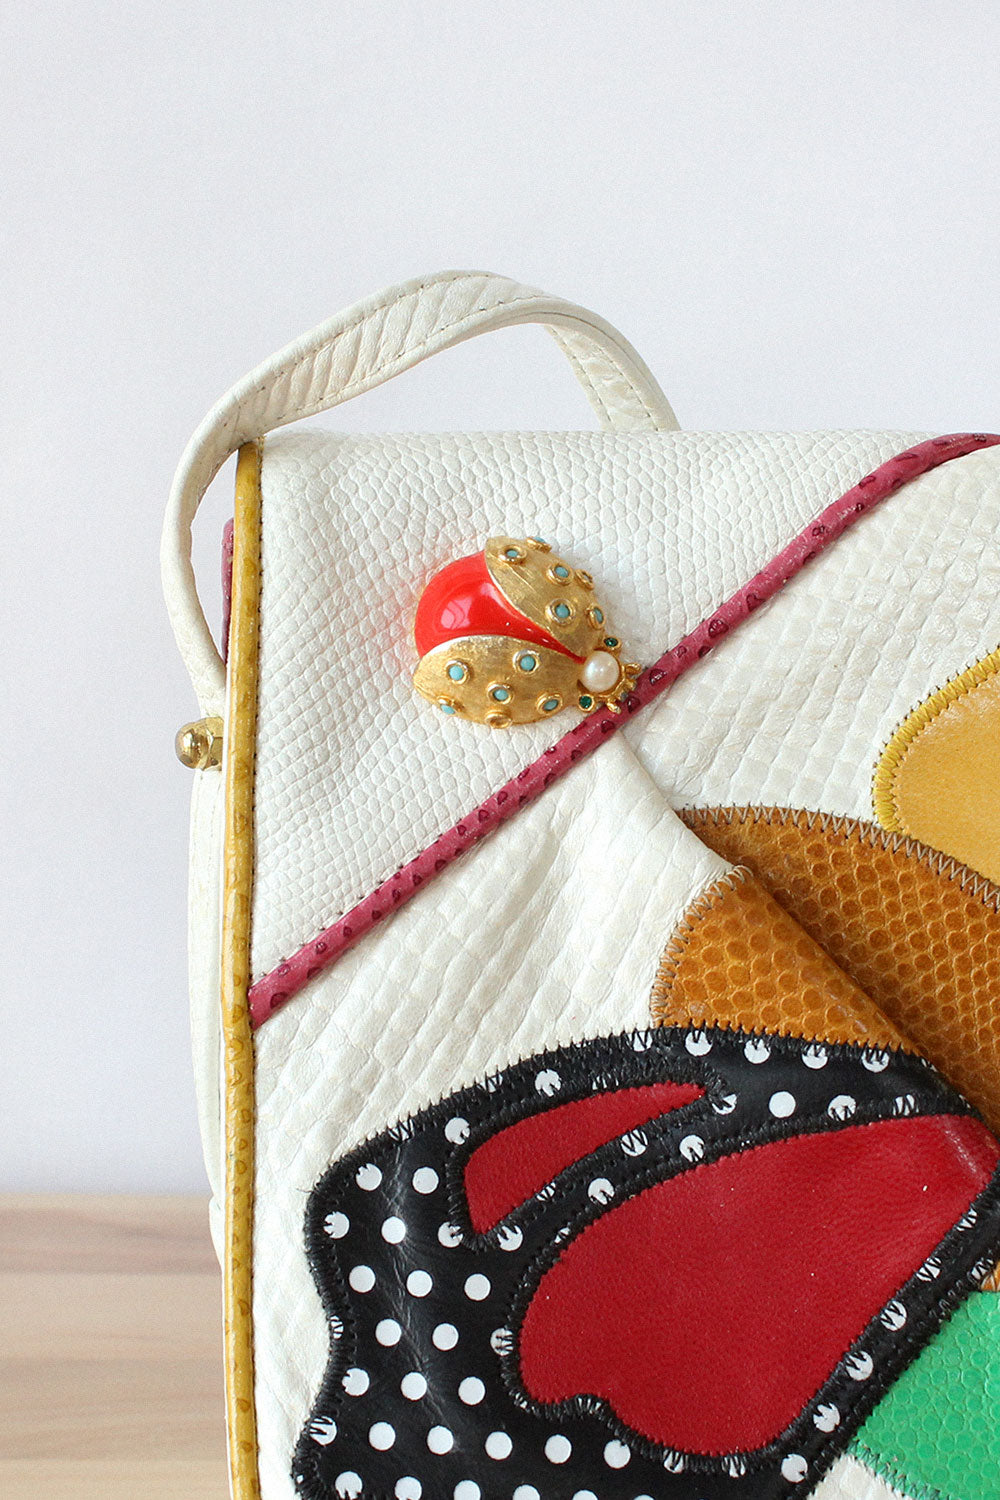 Sharif Ladybug Leather Bag